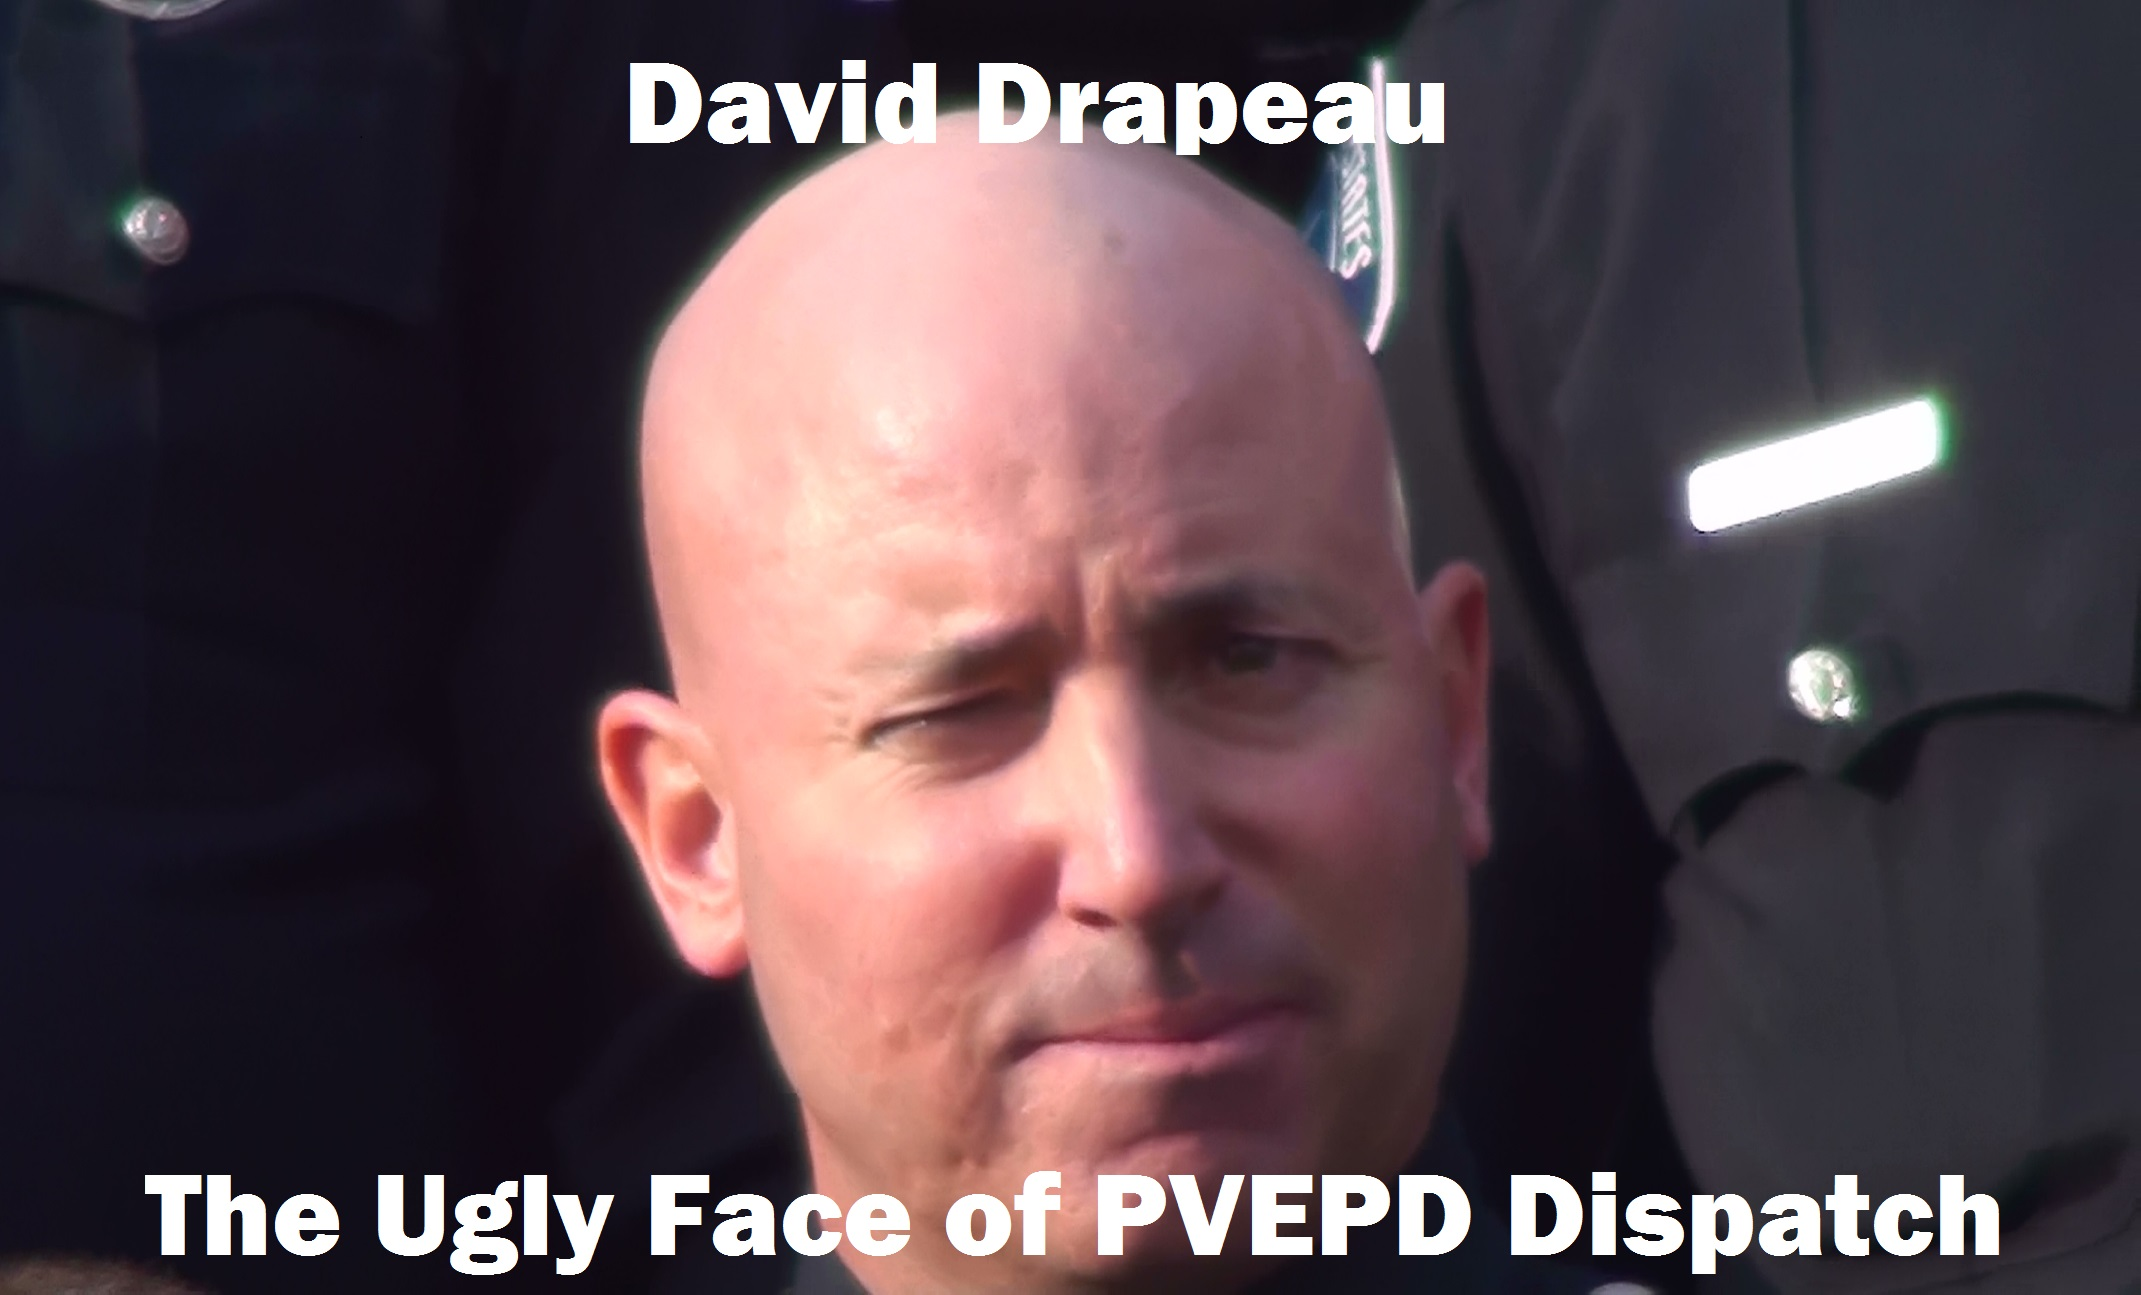 Drapeau David Phot Day Headshot 09-22-2015 - Cropped & Annotated